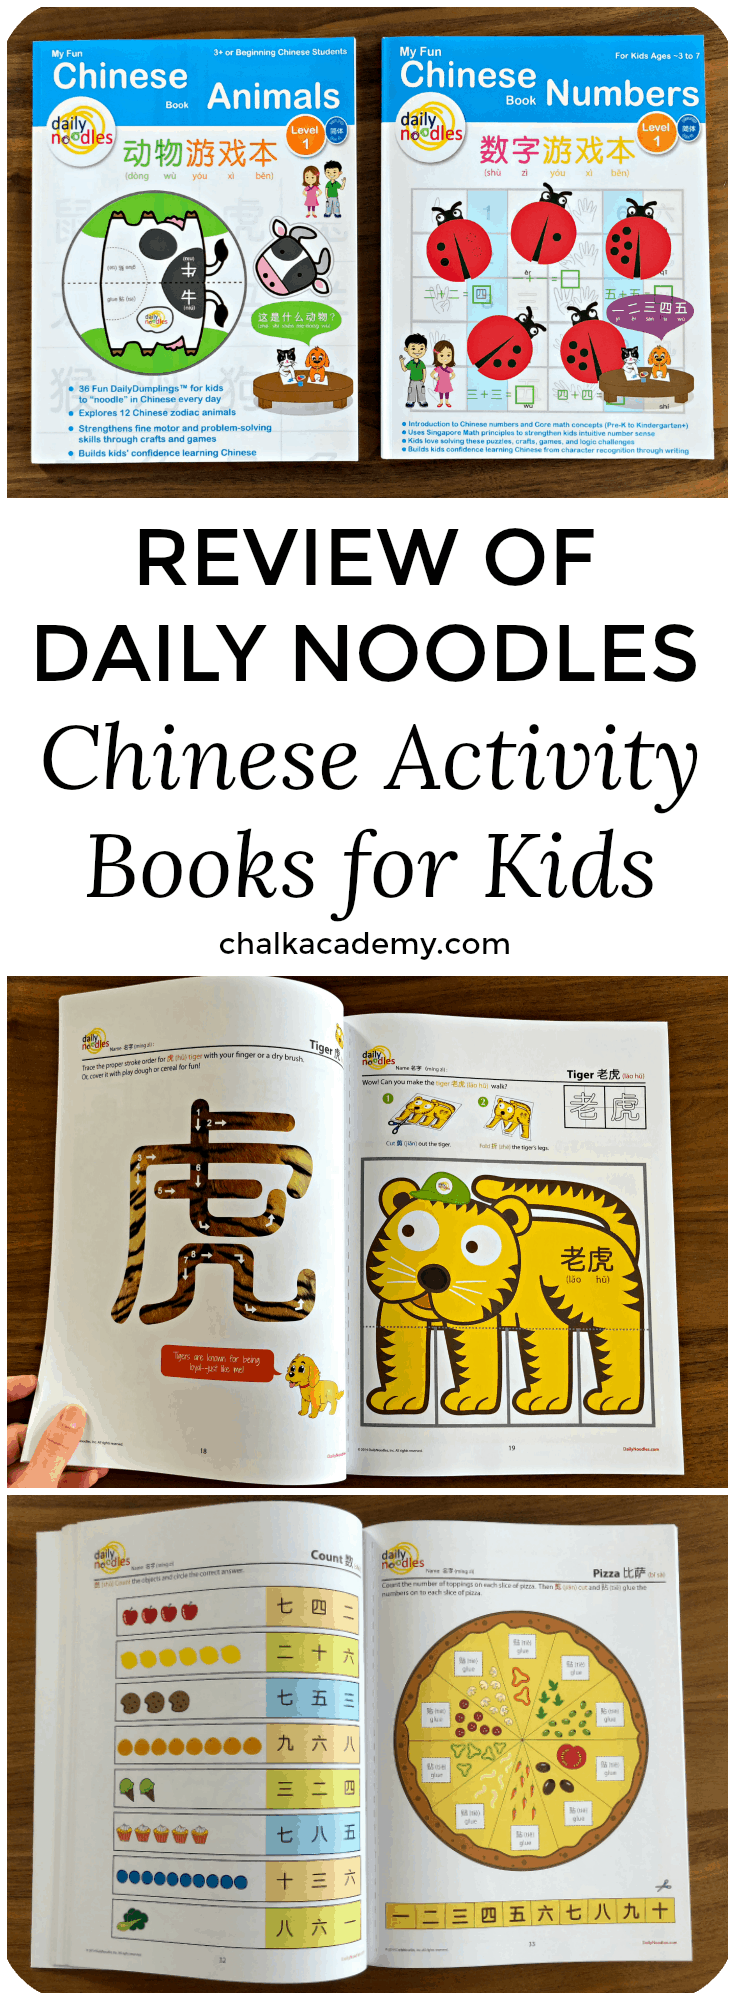 Daily Noodles Chinese Numbers and Animals Activity Workbook